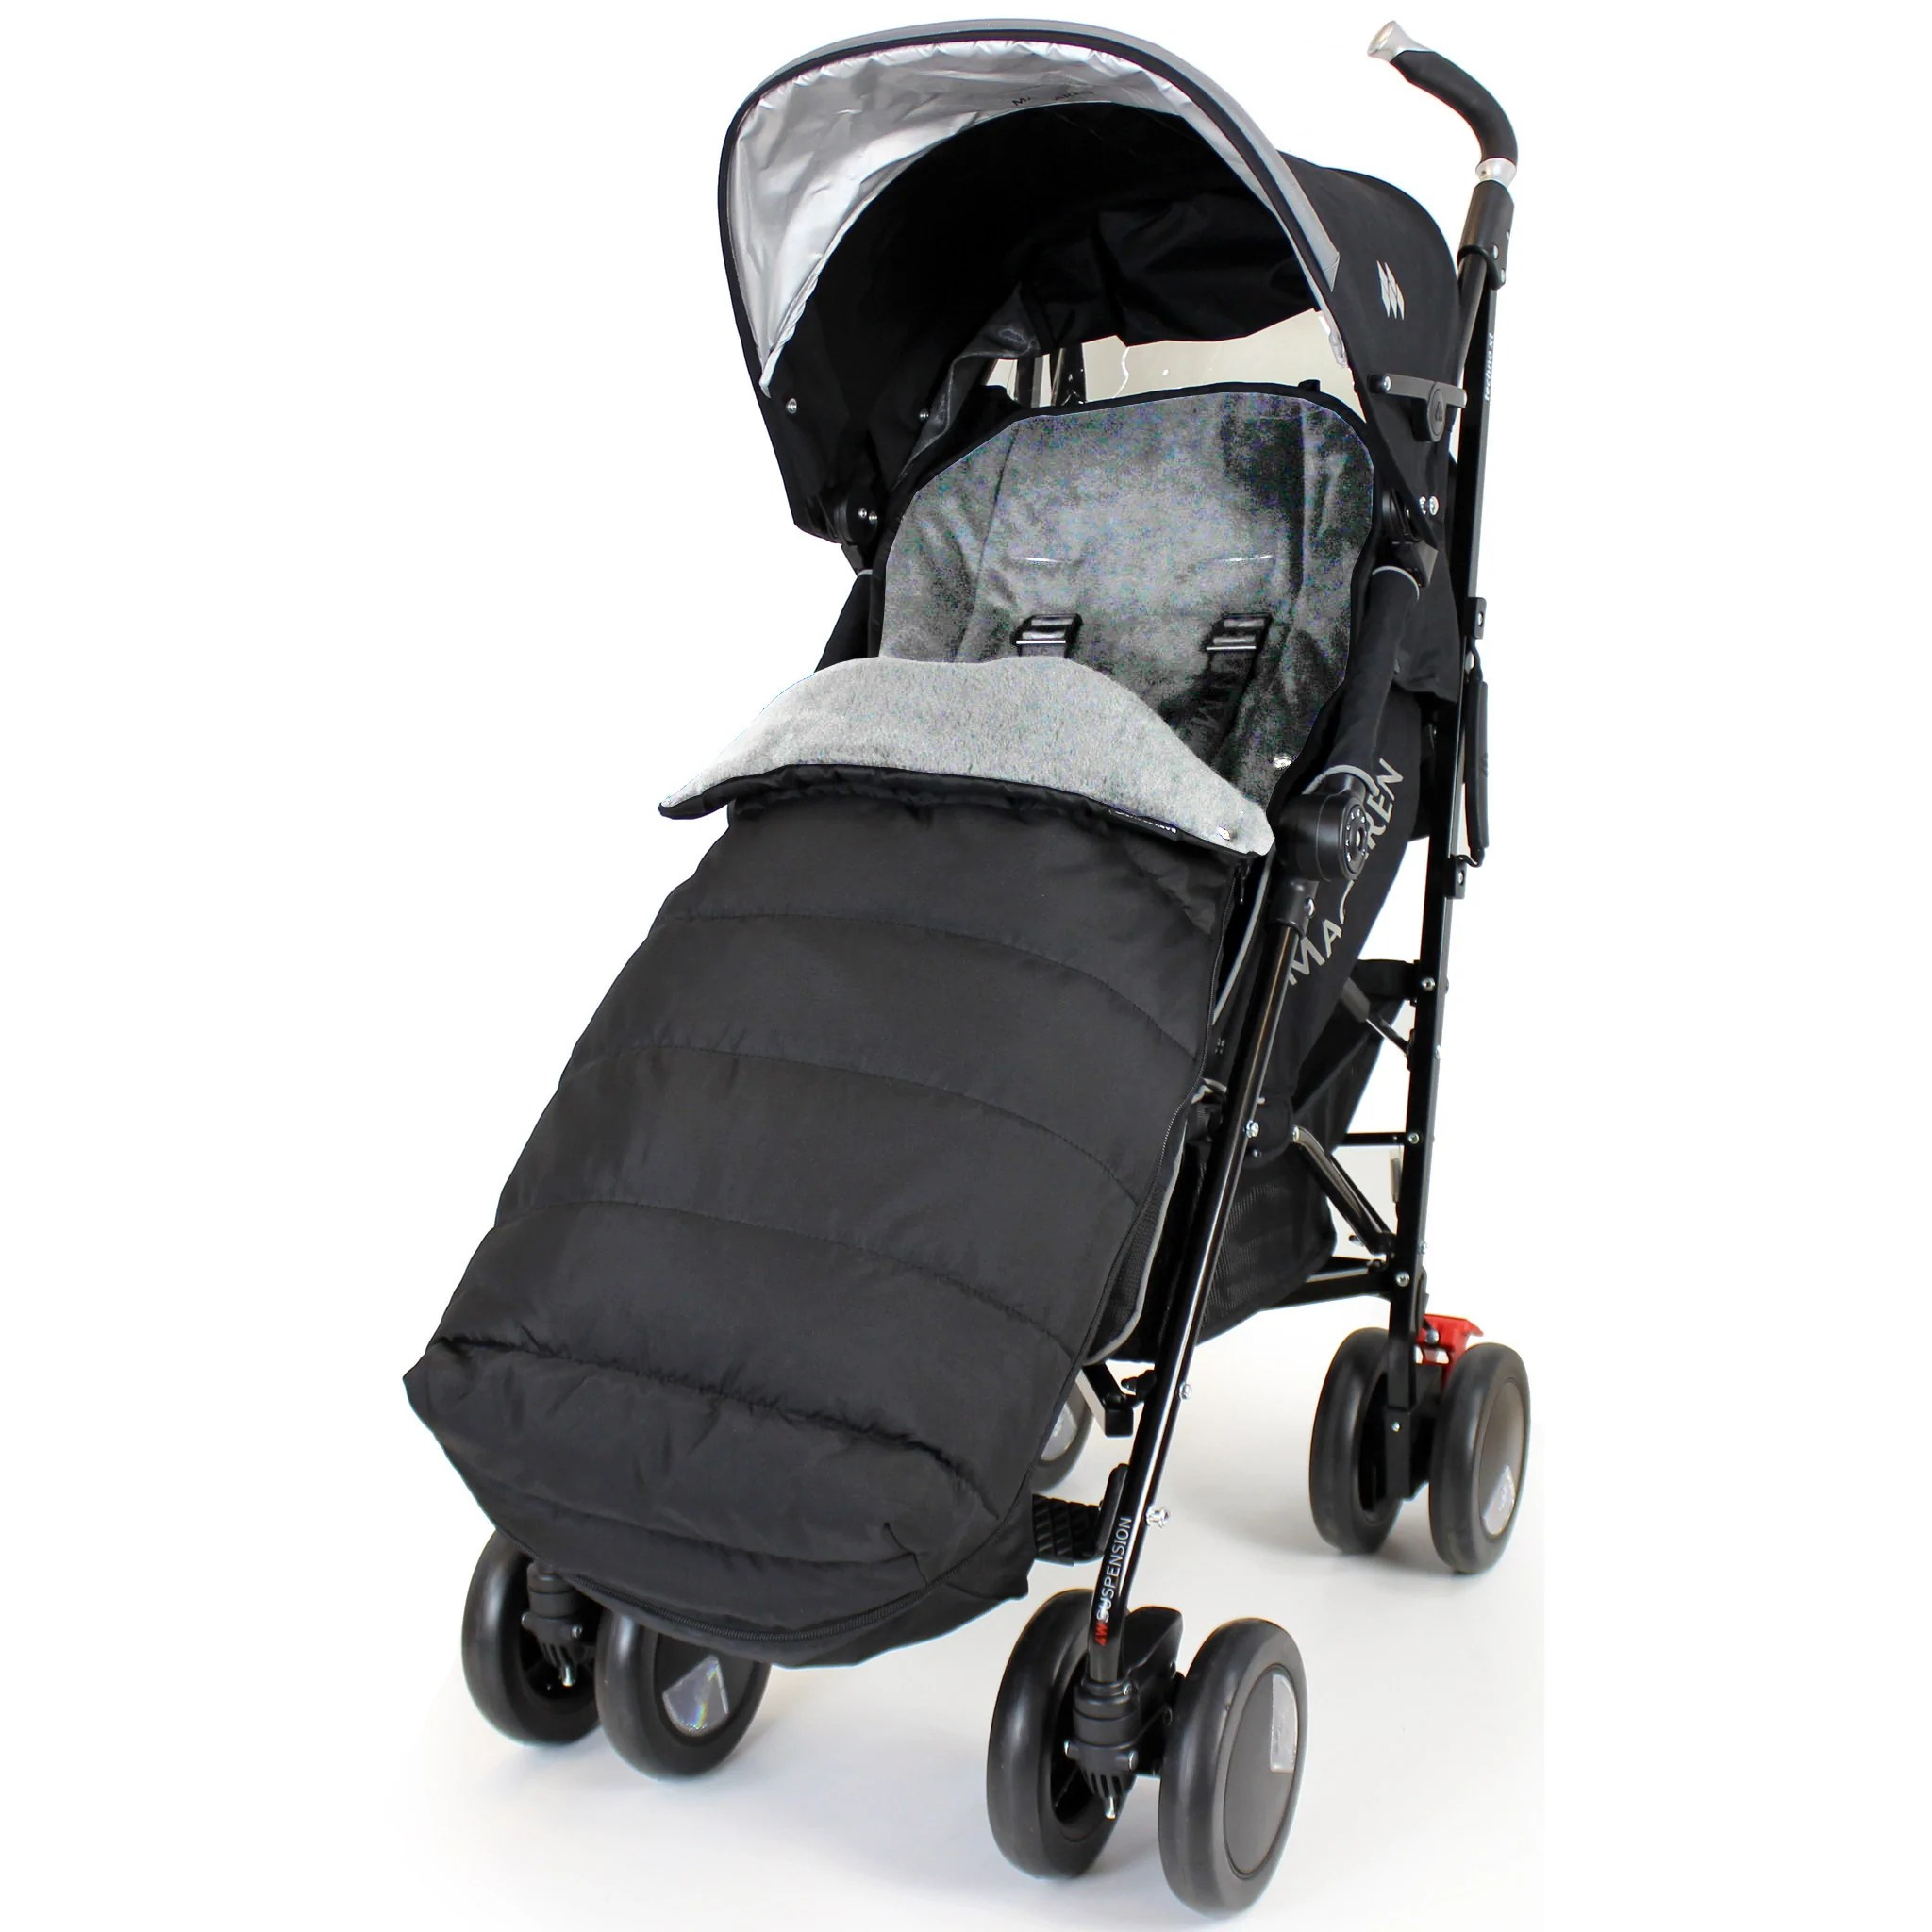 Hauck Buggy Jet Welcome To Baby Travel Ltd Exclusive British Designer And